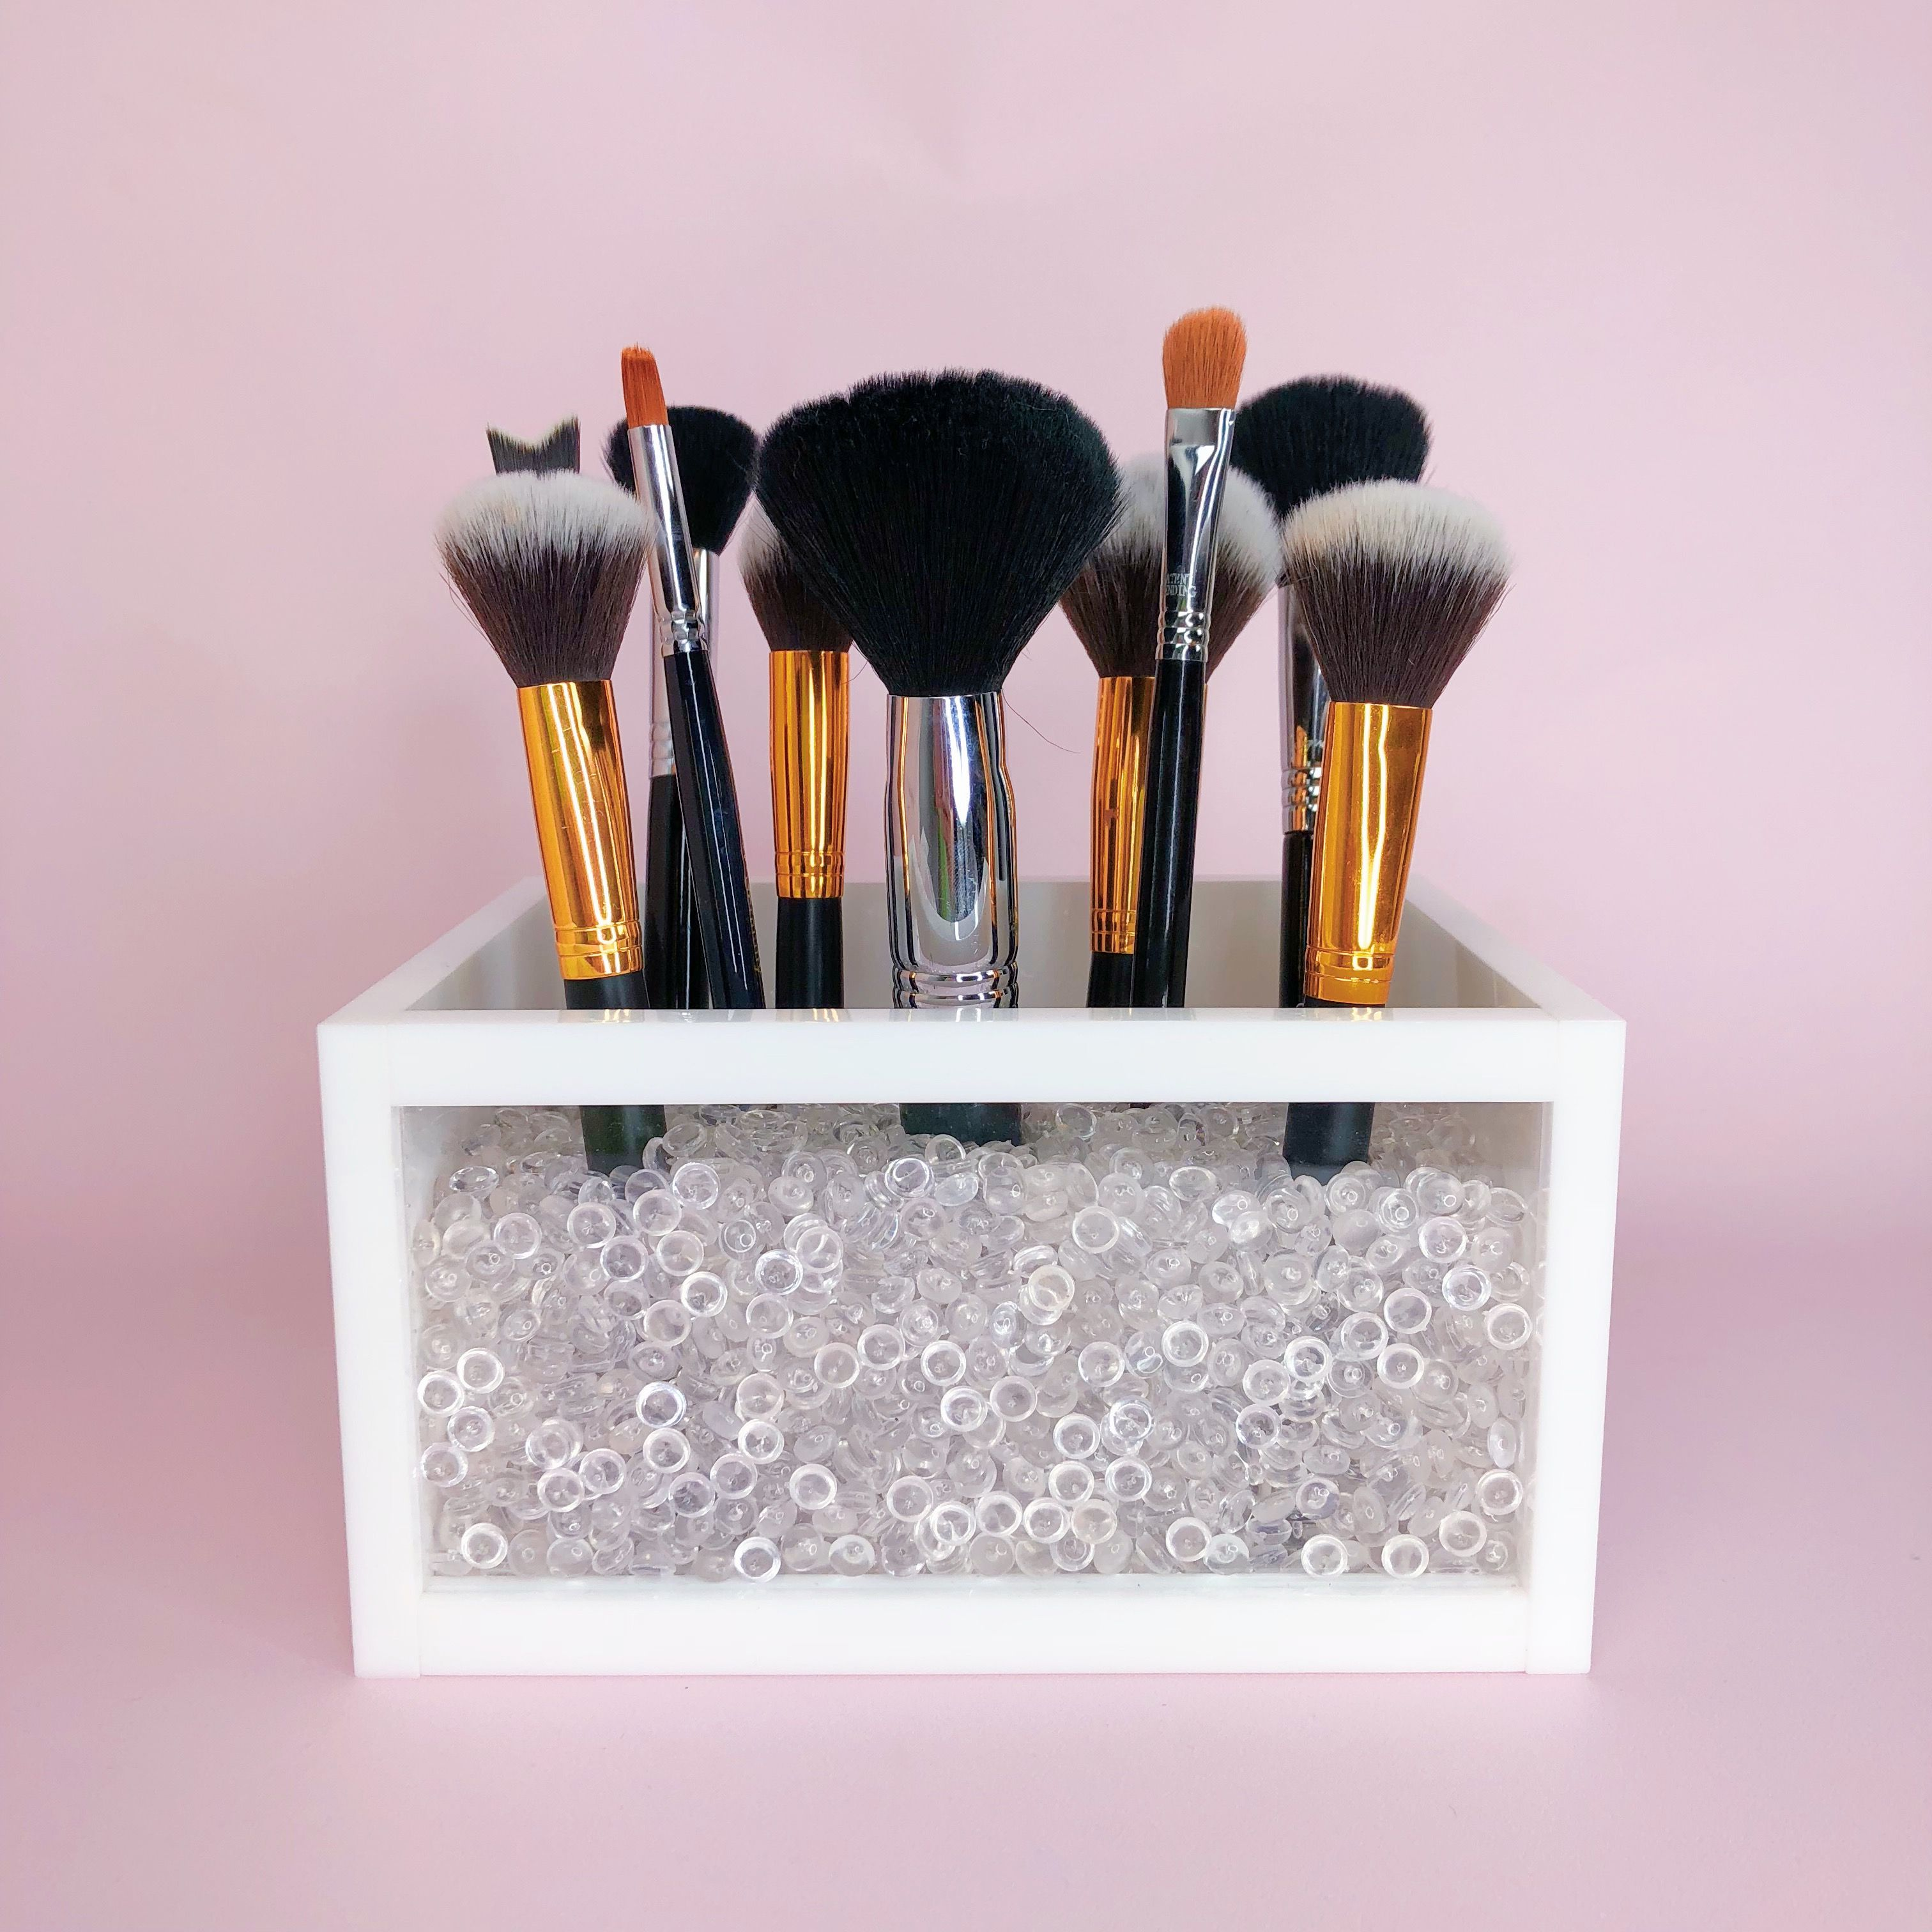 Brush Holder galore! Our Mia Brush Holder is perfect for